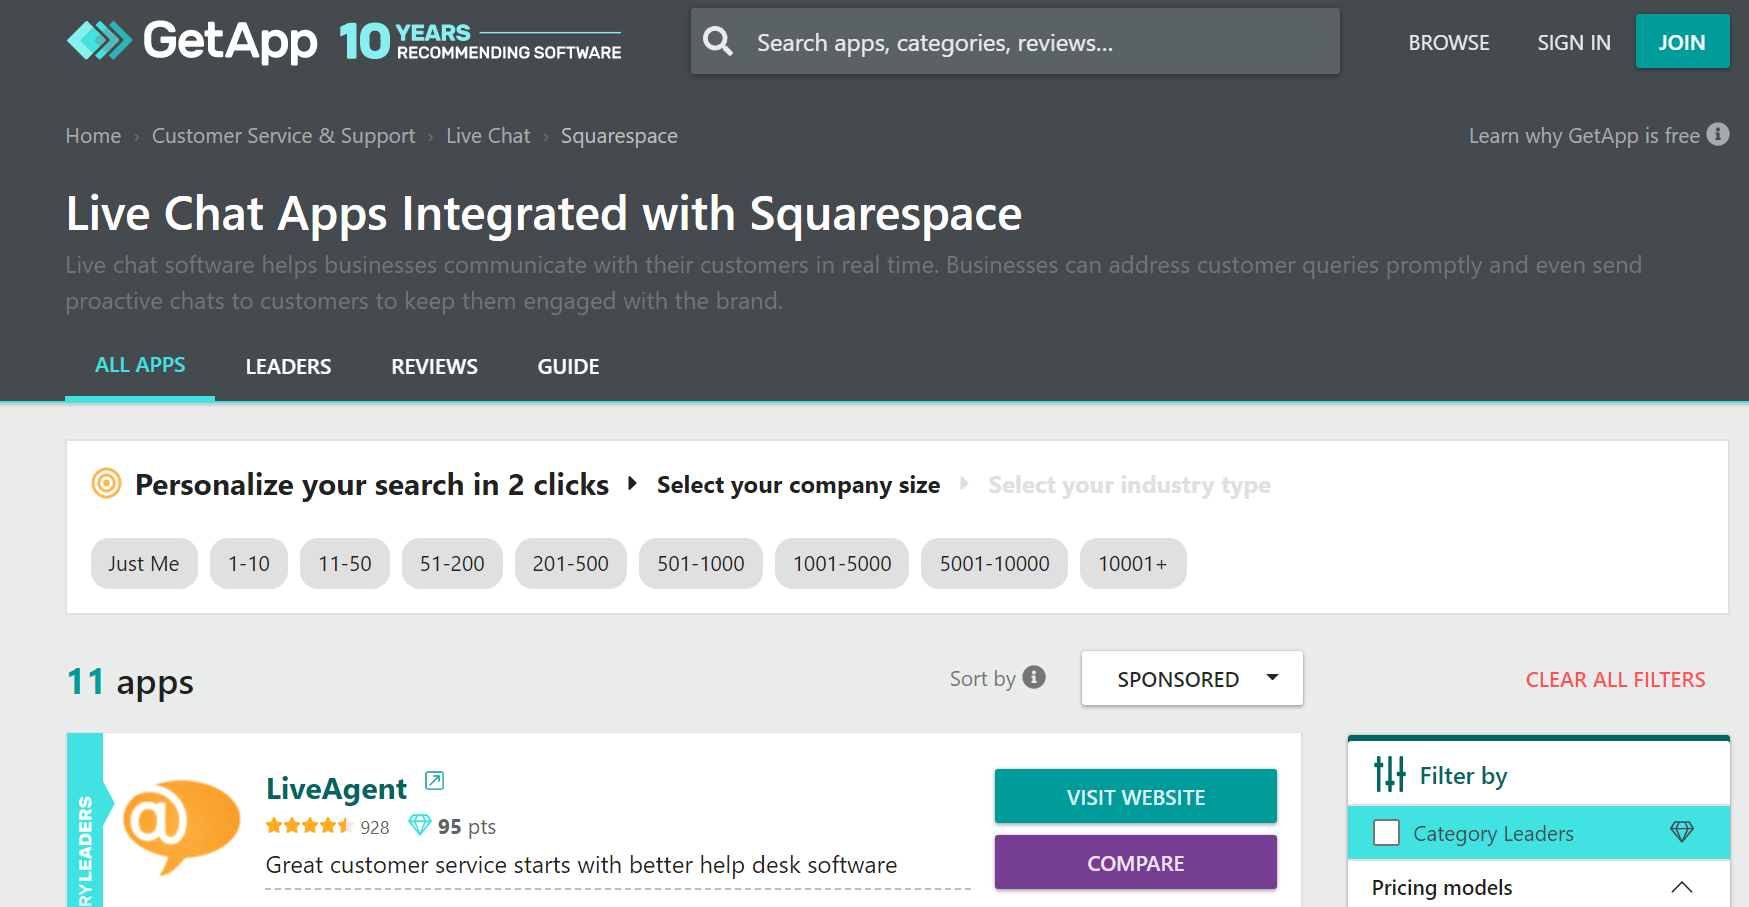 11 live chat apps that integrate with squarespace in the getapp catalog